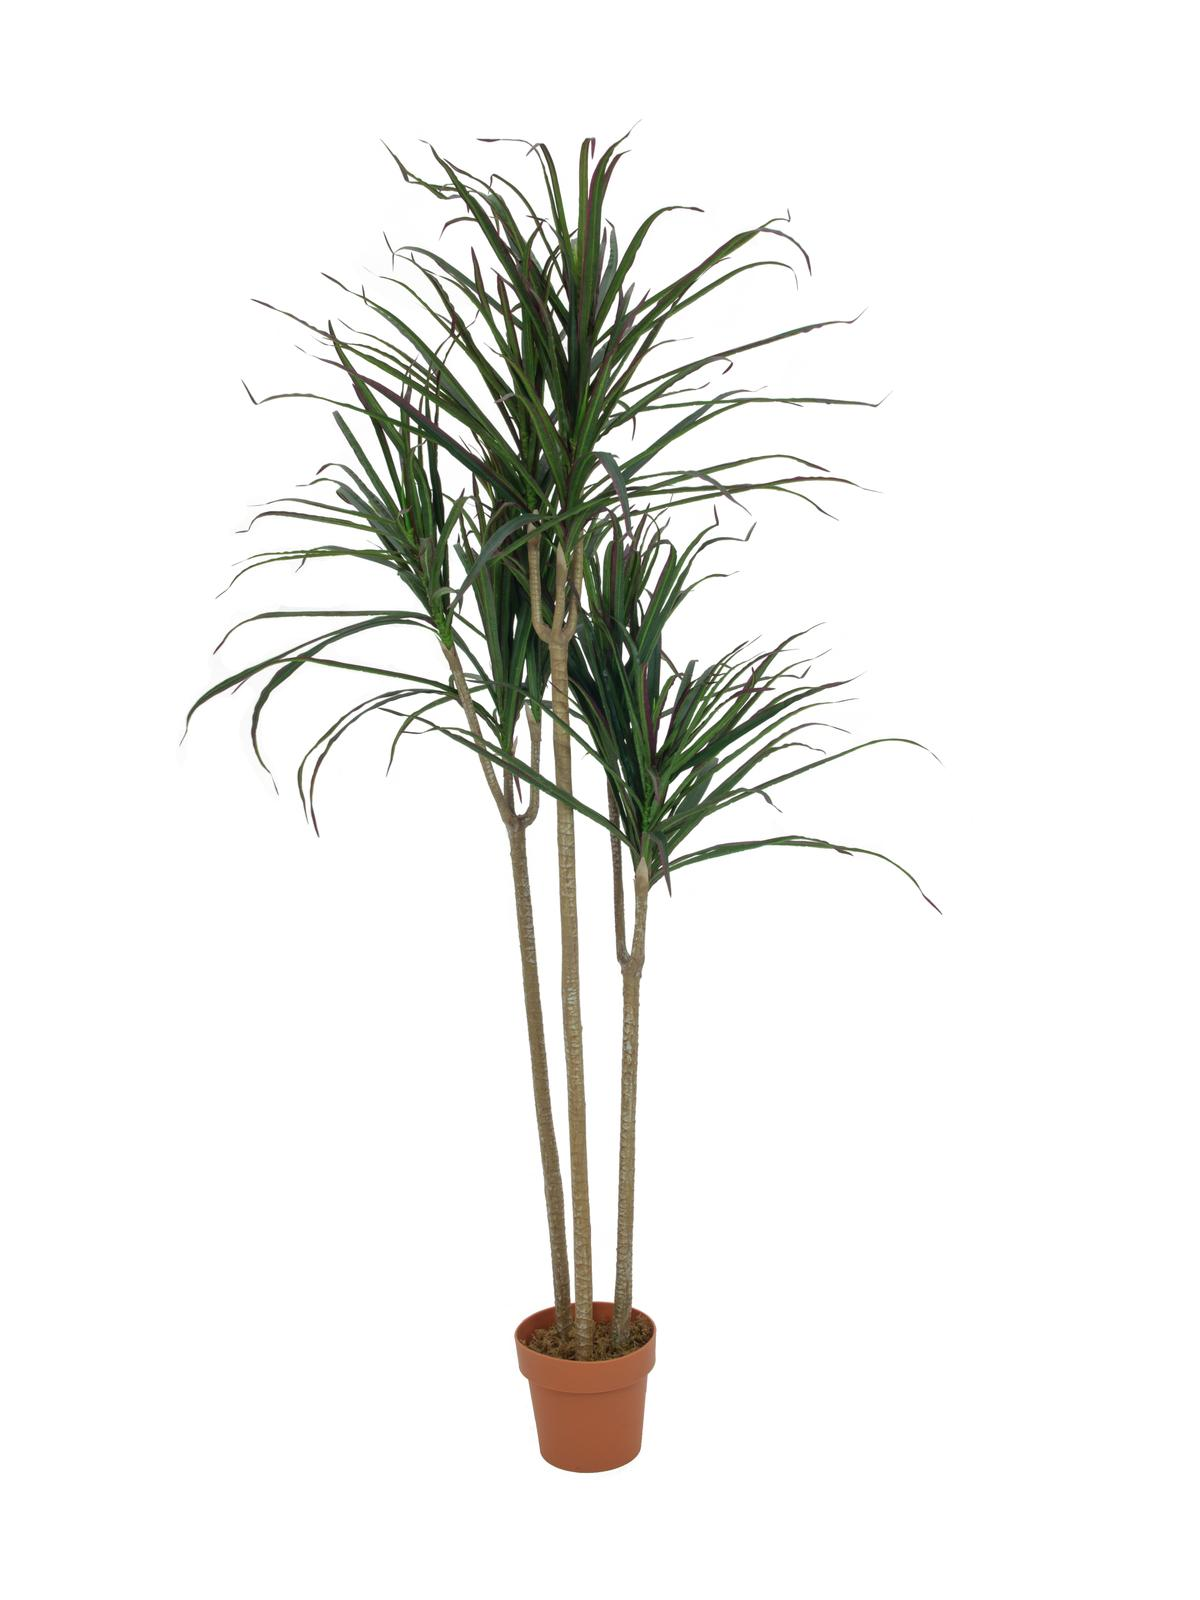 EUROPALMS pianta artificiale  Dracaena, verde, 180cm